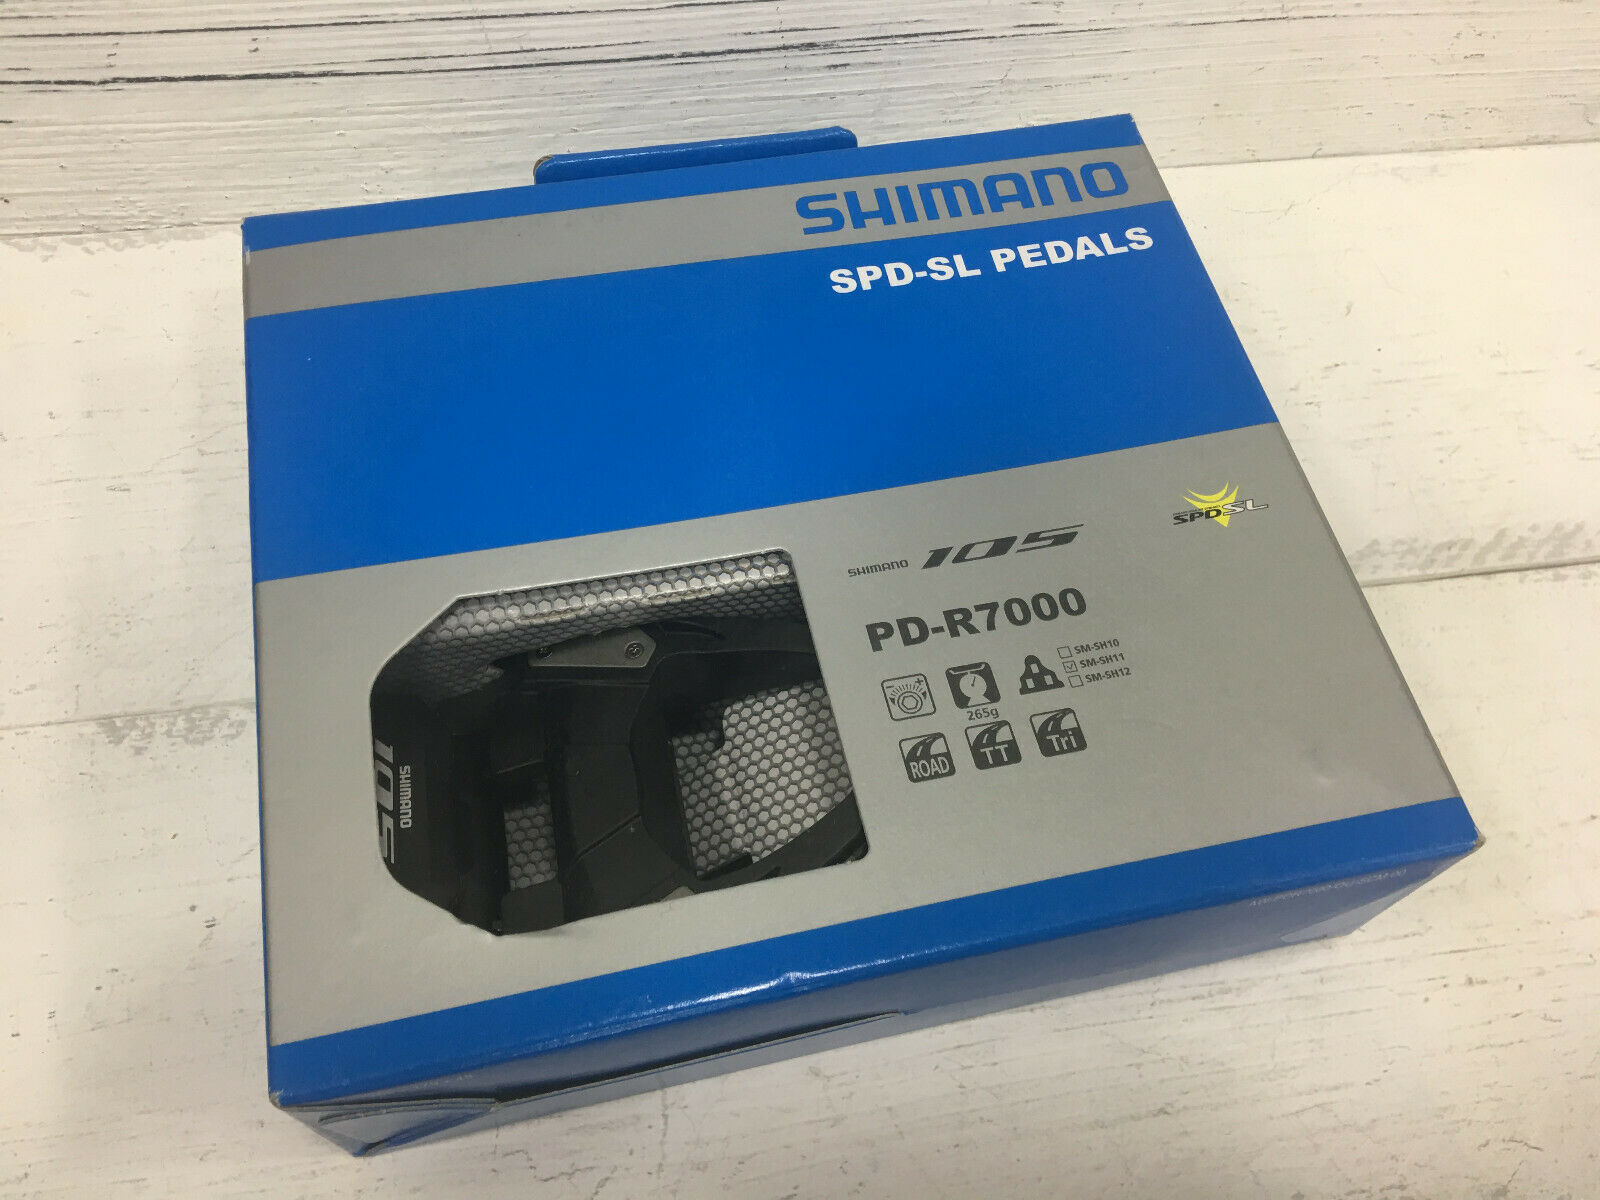 Shimano 105 PD-R7000  SPD-SL Road Bike Pedal  best prices and freshest styles